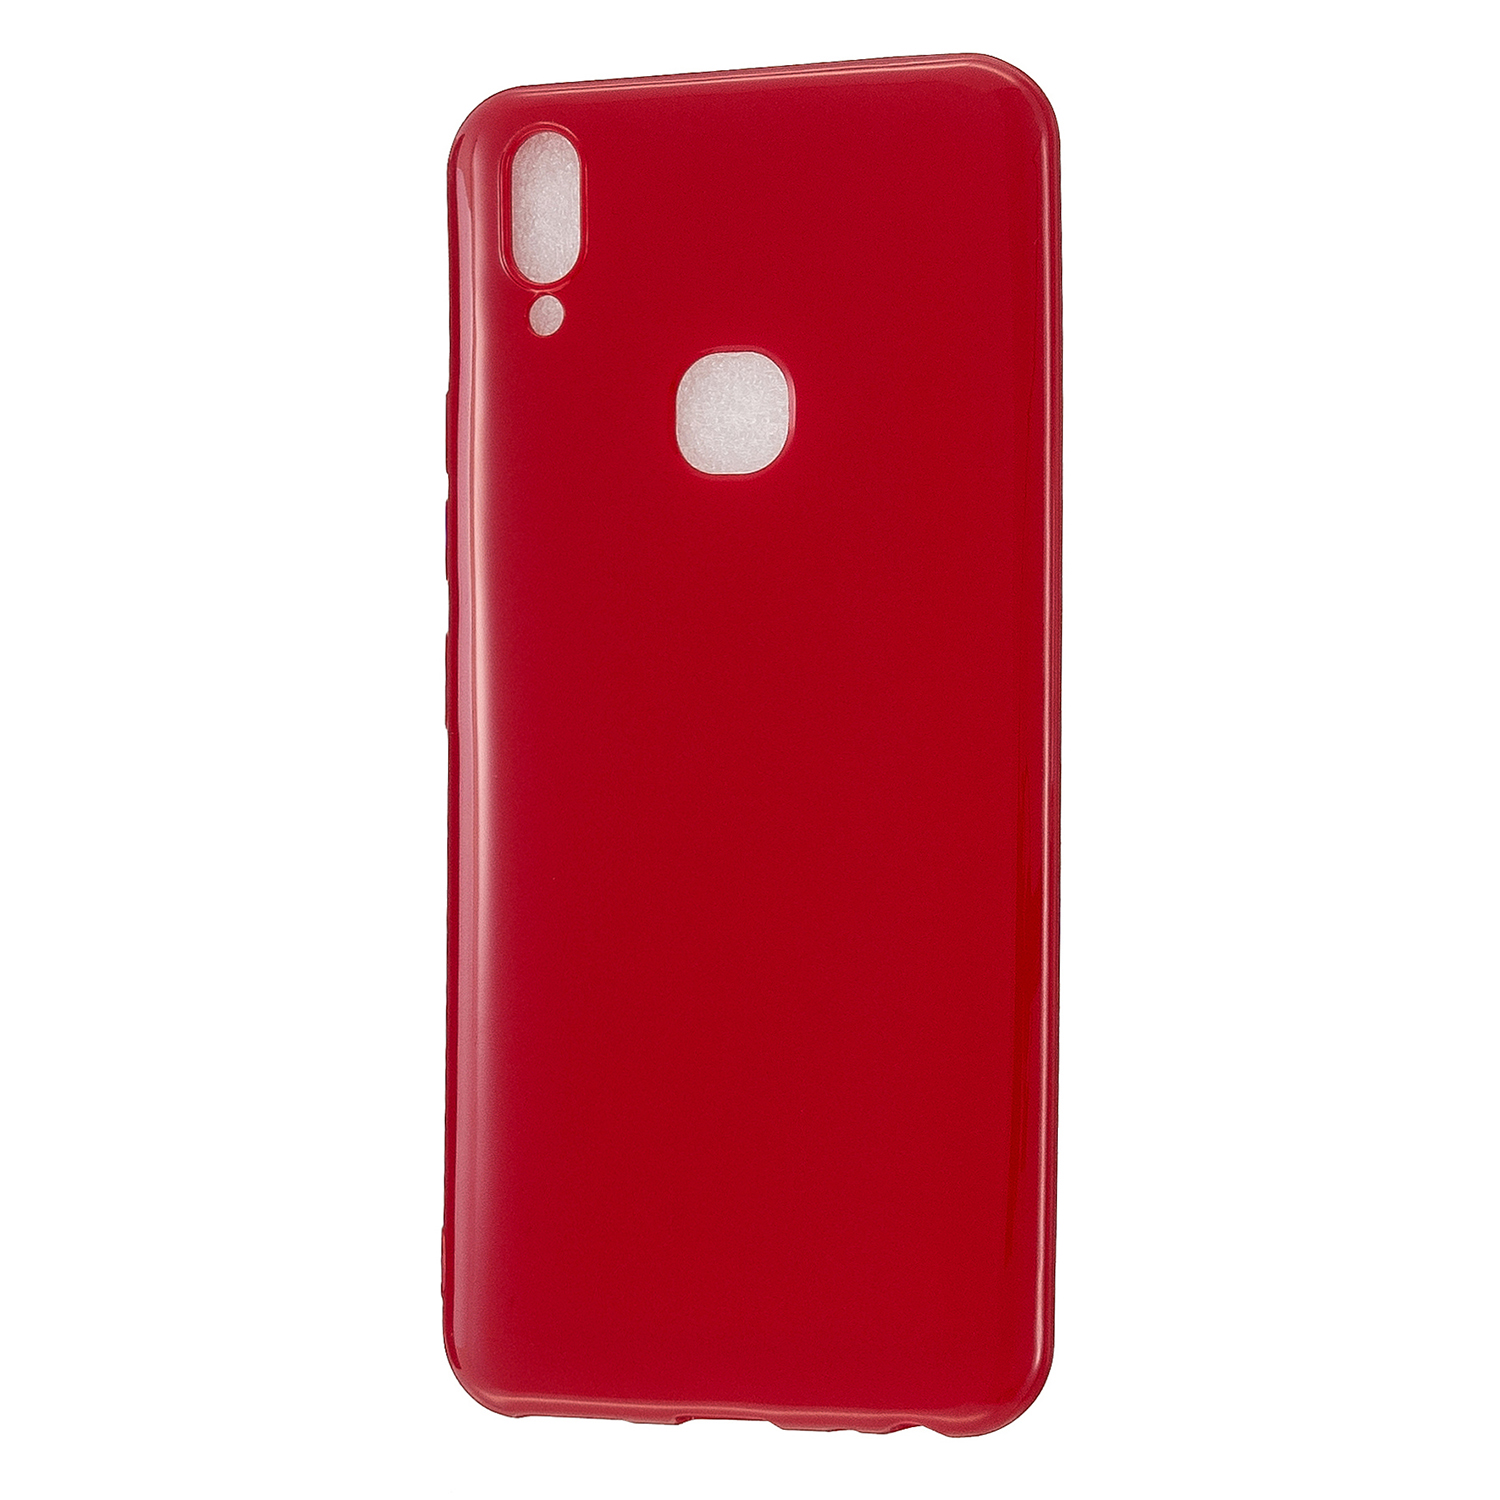 For VIVO Y83/Y85 Cellphone Cover Phone Screen Protector Soft TPU Phone Case Full Body Protection Shell Rose red